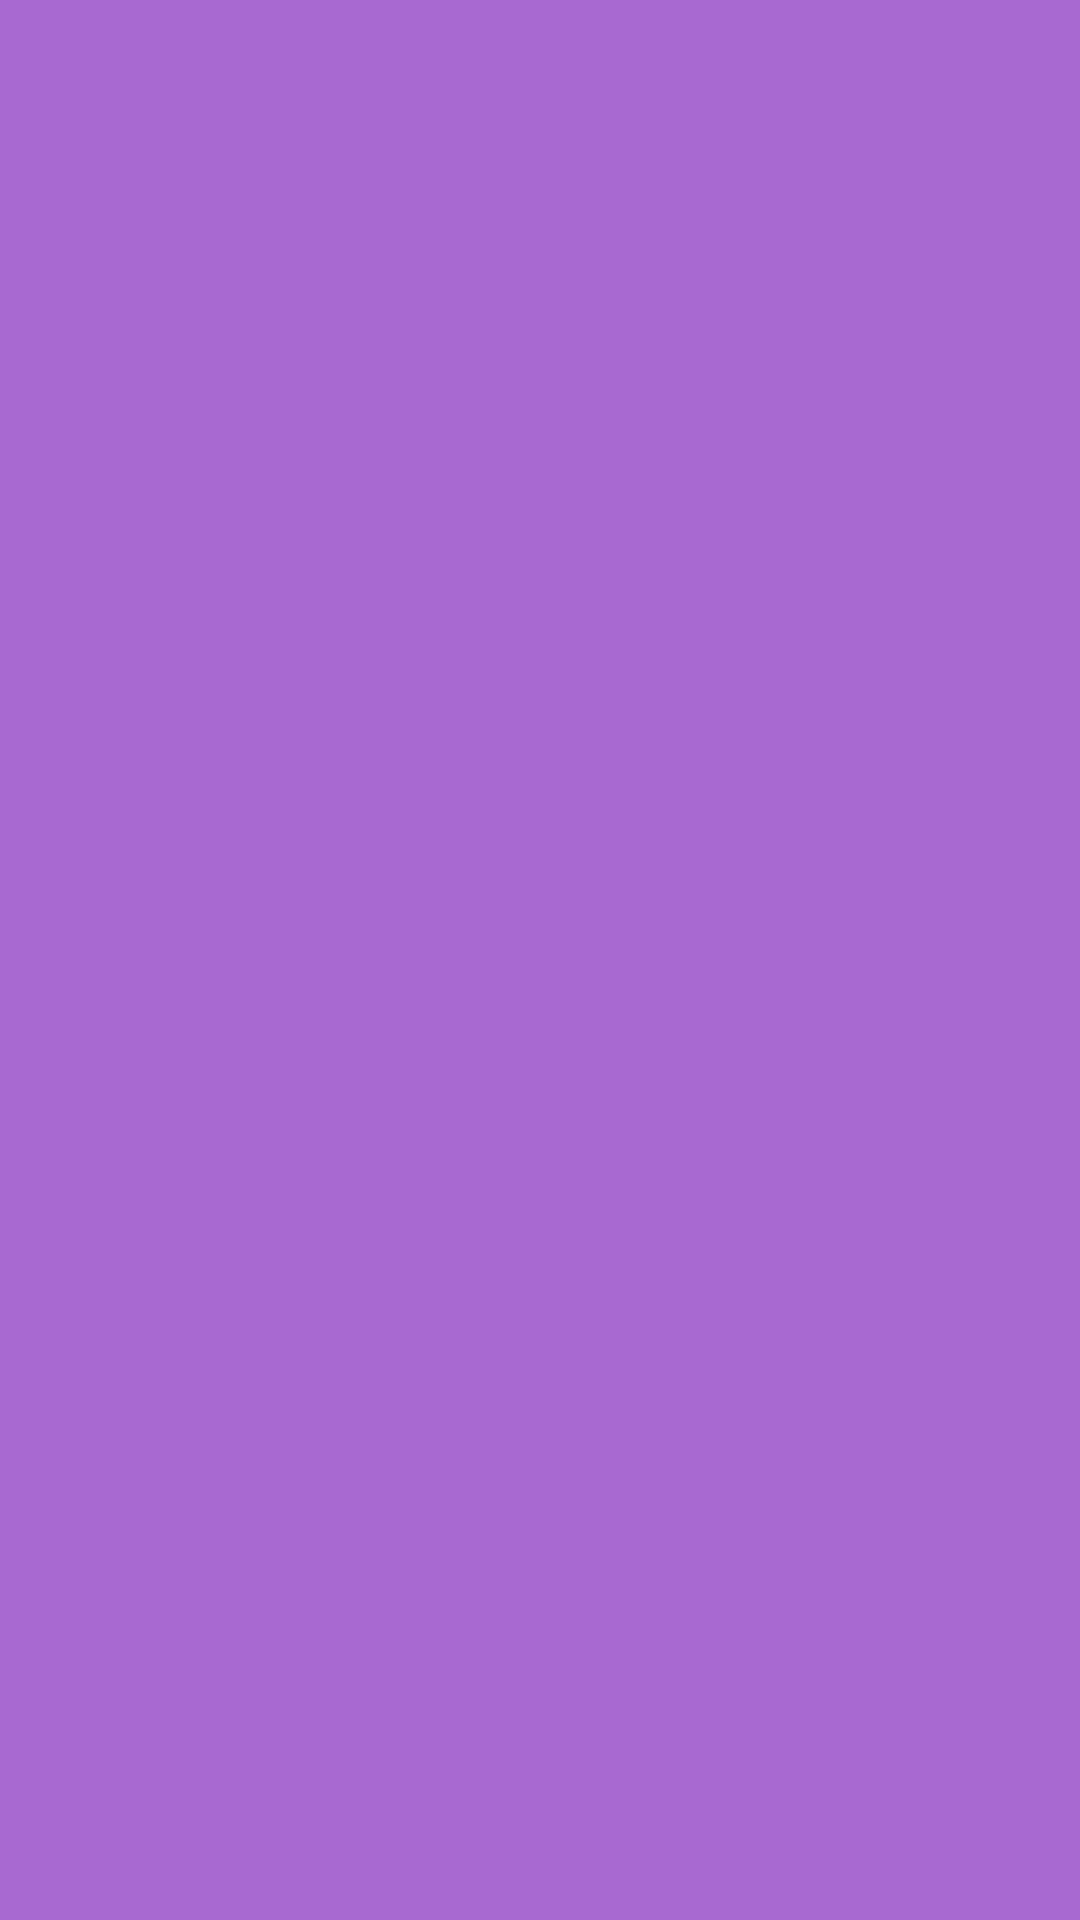 1080x1920 Rich Lavender Solid Color Background